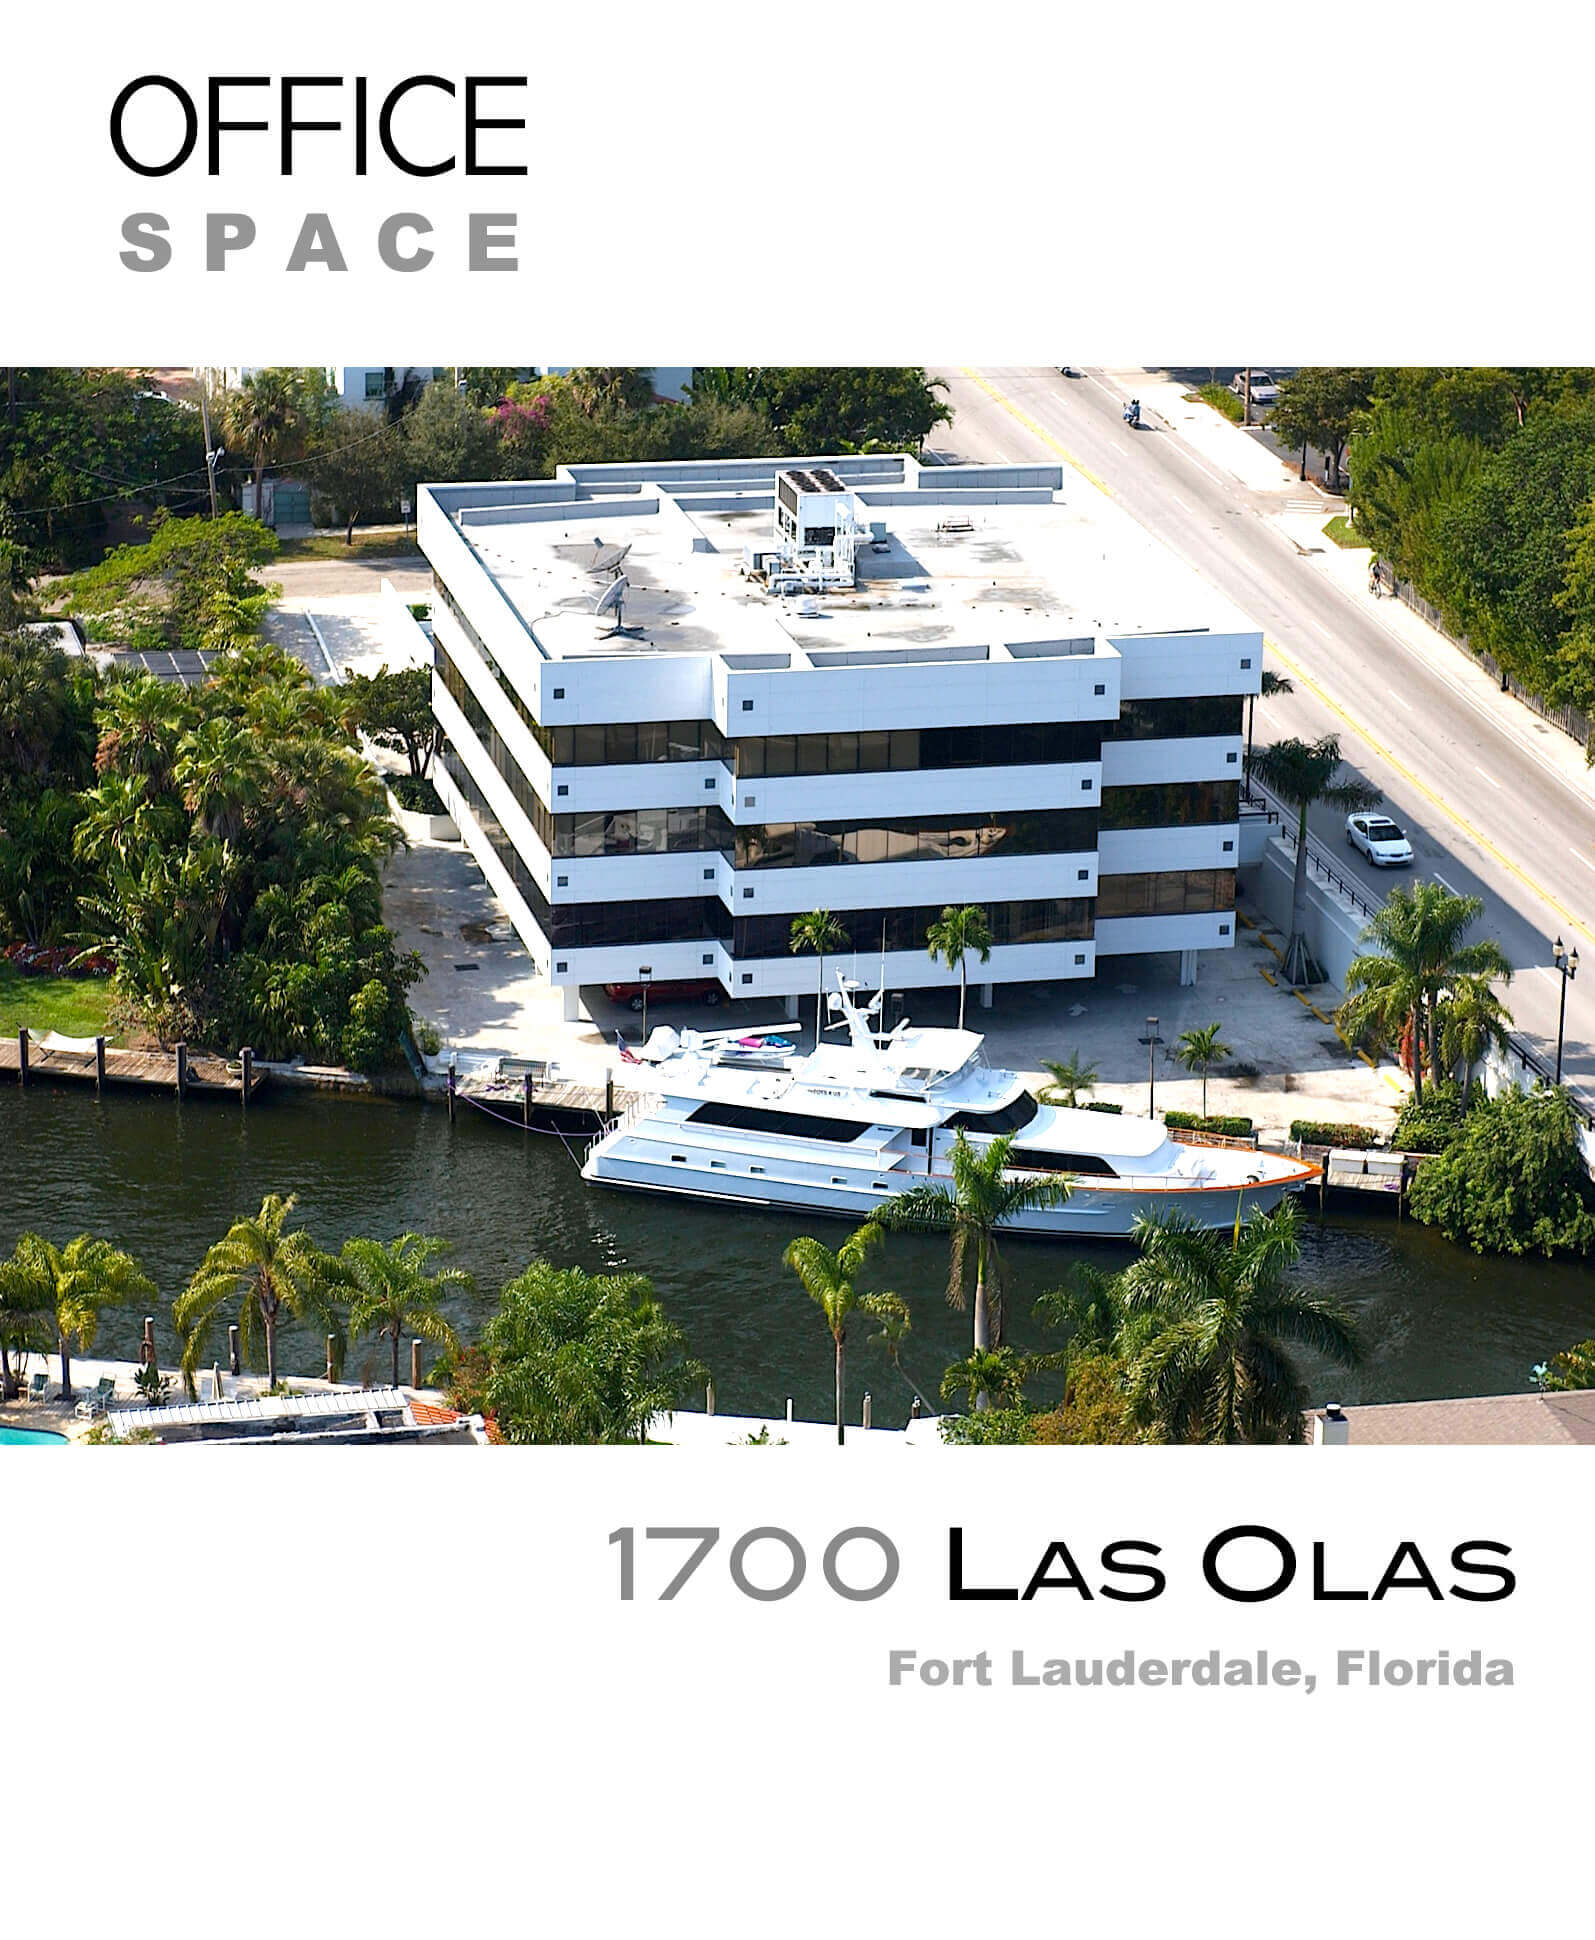 1700 Las Olas Office Space